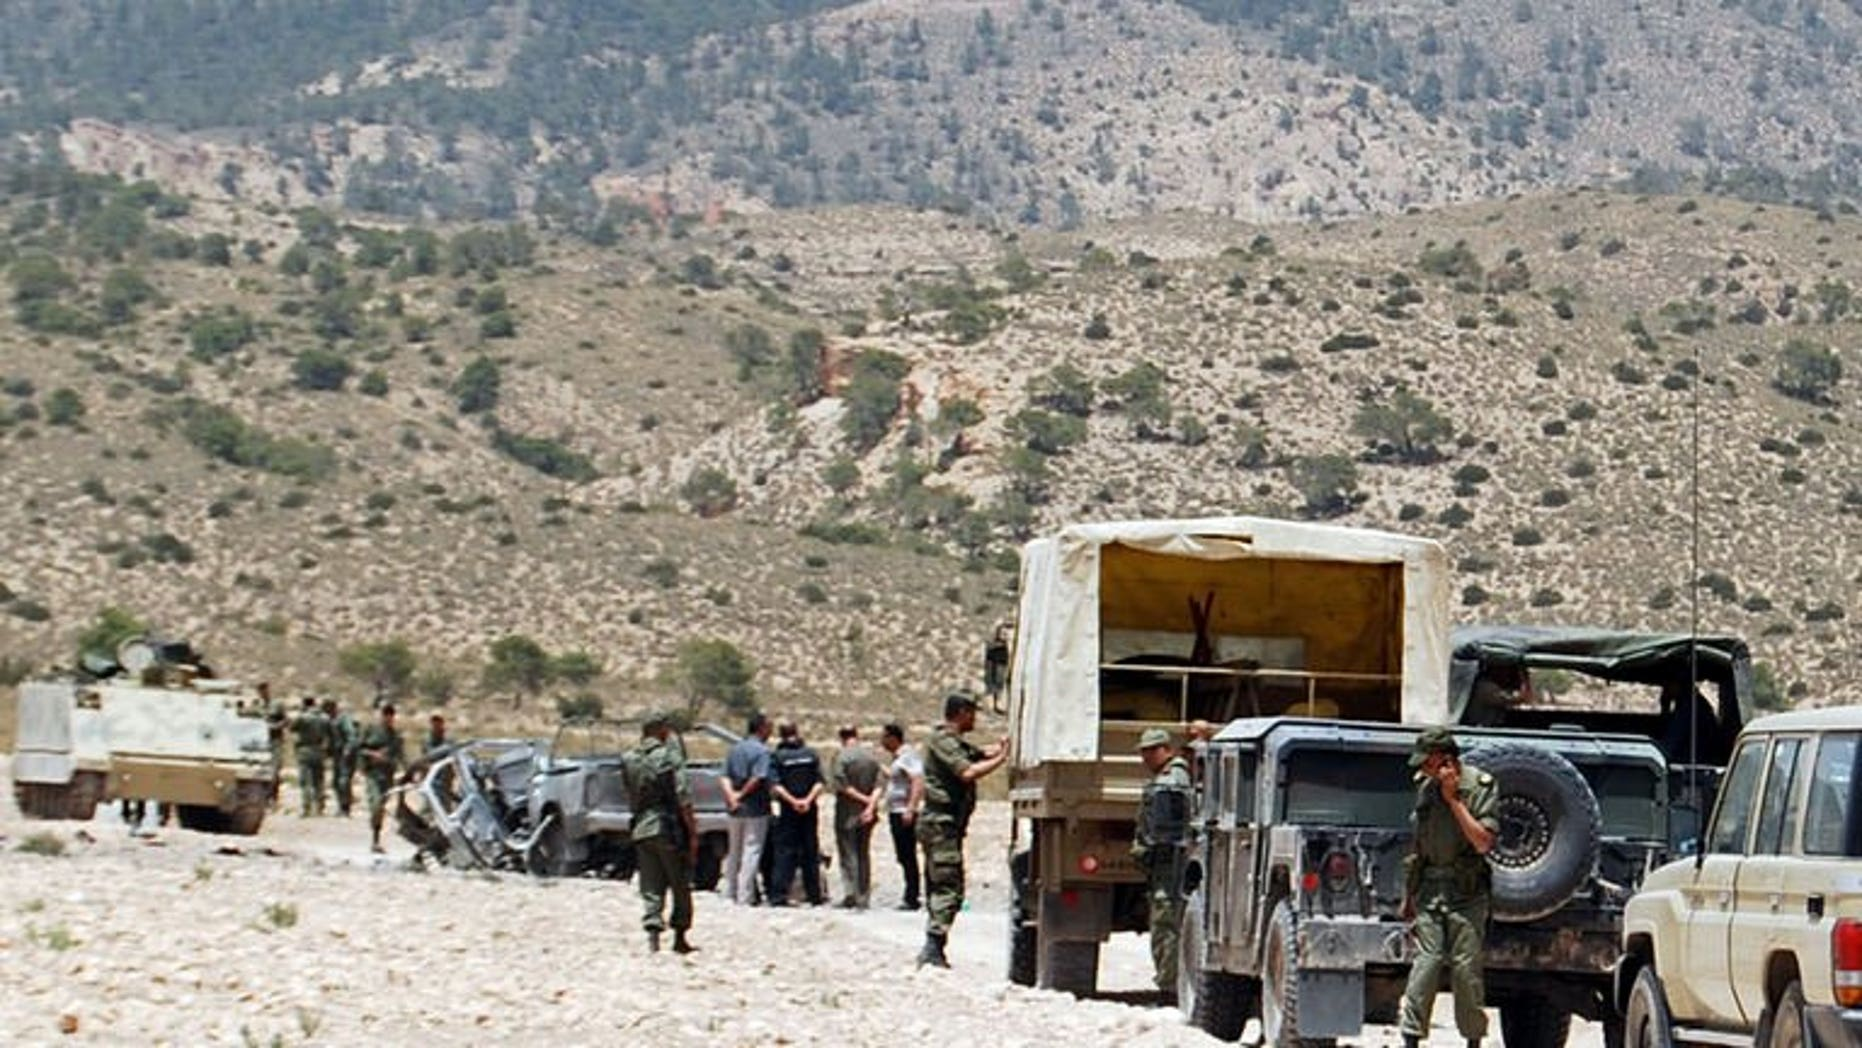 """Tunisian army stand guard near a demolished vehicle following a roadside bomb in the mountainous border region near Algeria on June 6, 2013. The Tunisian army launched an offensive early Friday against a group of """"terrorists"""" near the Algerian border, where eight Tunisian soldiers were killed earlier this week, a military source told AFP."""